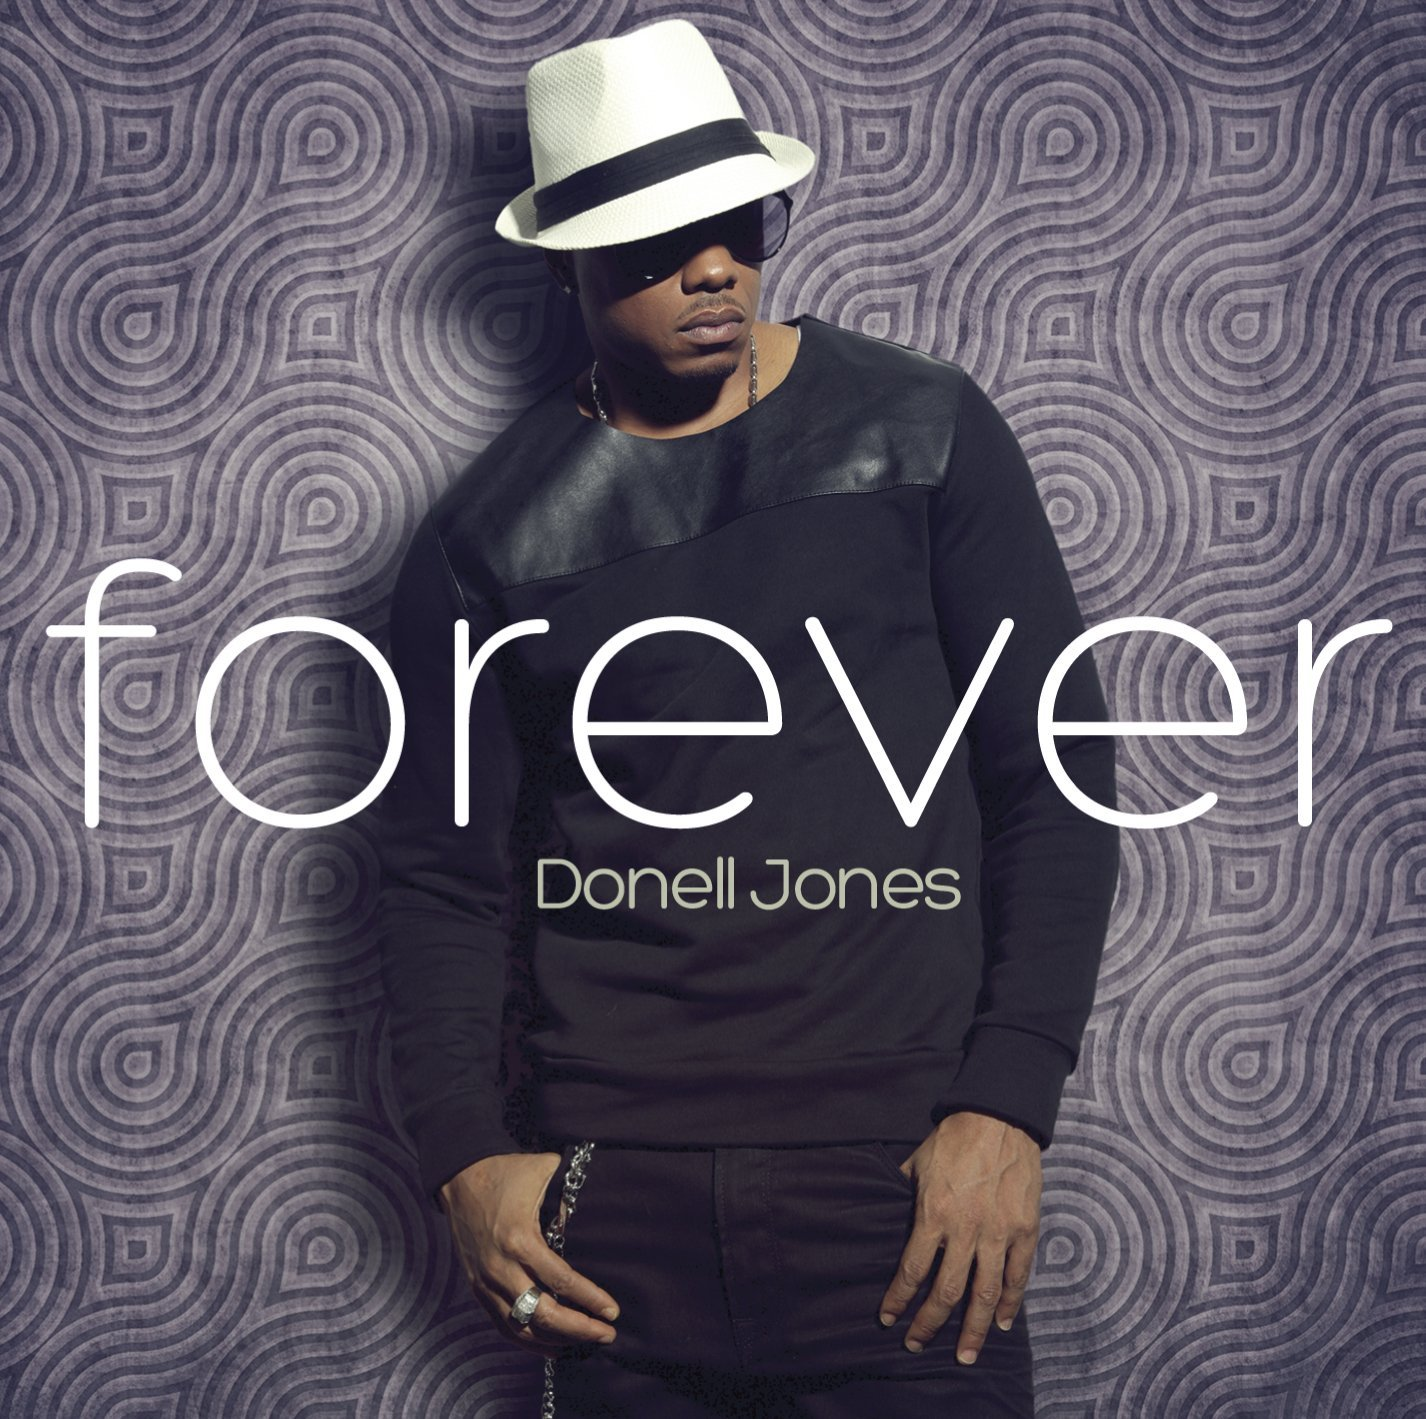 Donell Foreve